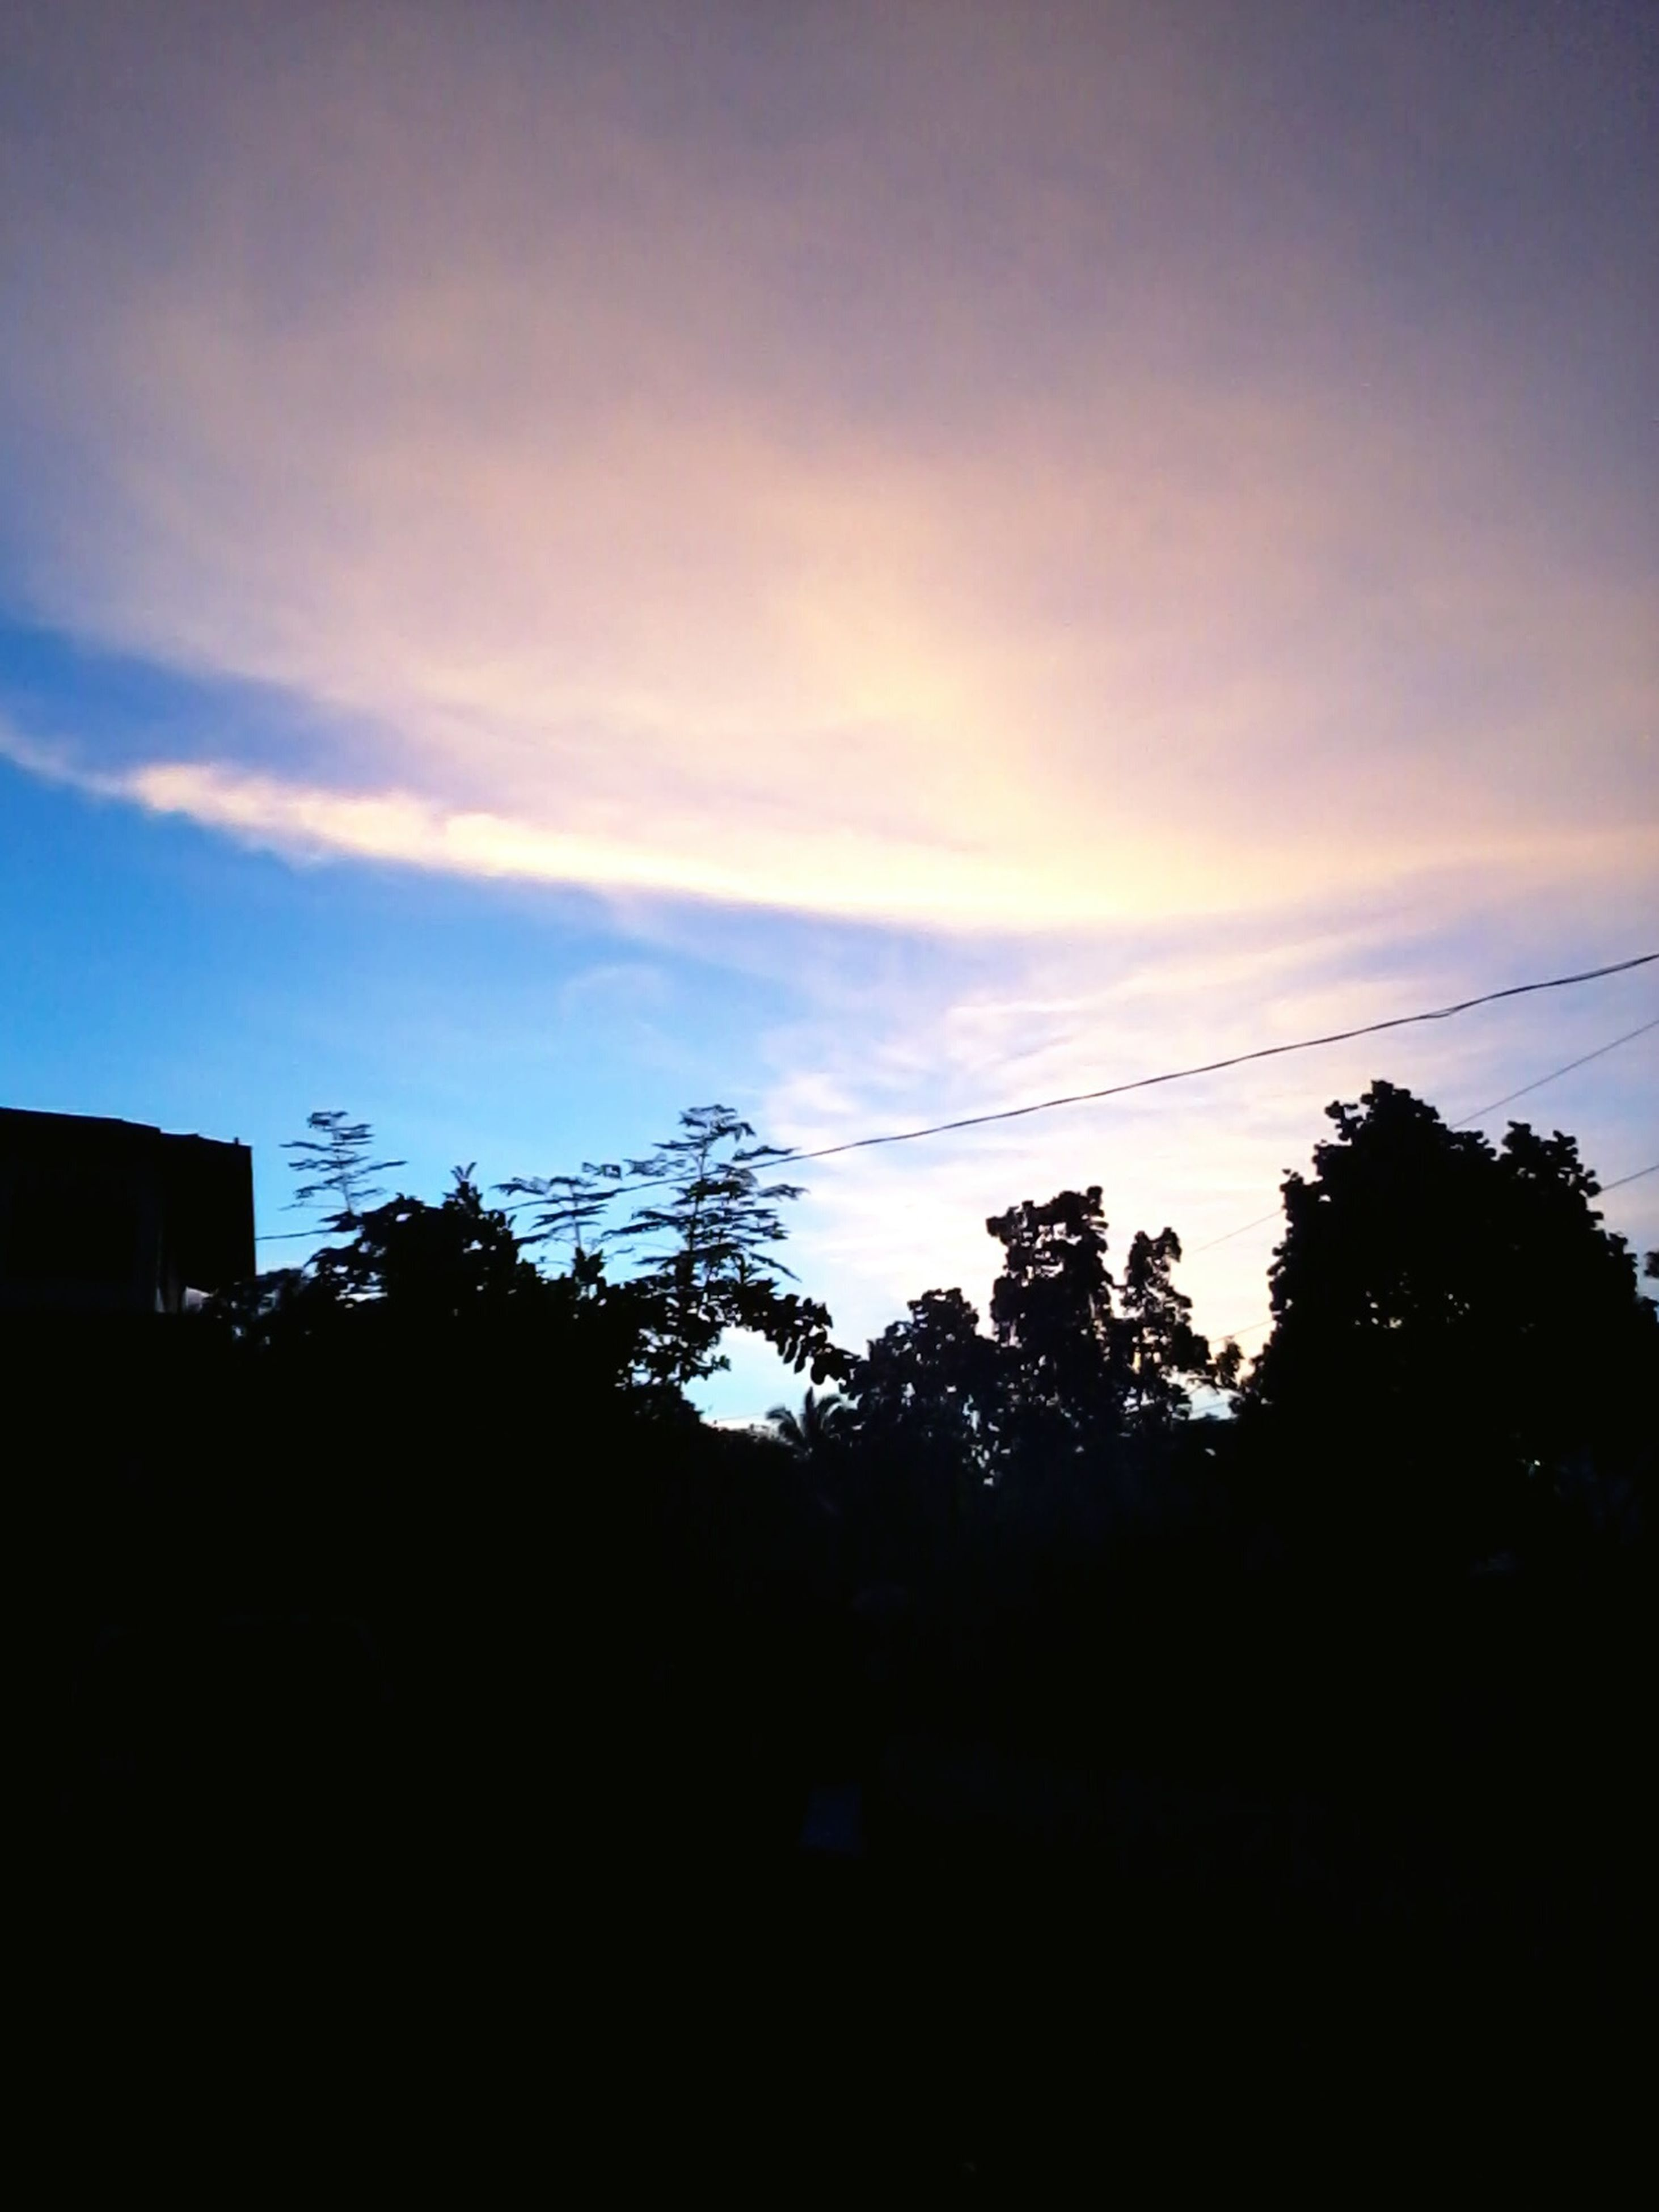 silhouette, tree, sunset, sky, low angle view, tranquility, beauty in nature, nature, tranquil scene, scenics, cloud - sky, dusk, cloud, outline, outdoors, dark, no people, growth, built structure, copy space